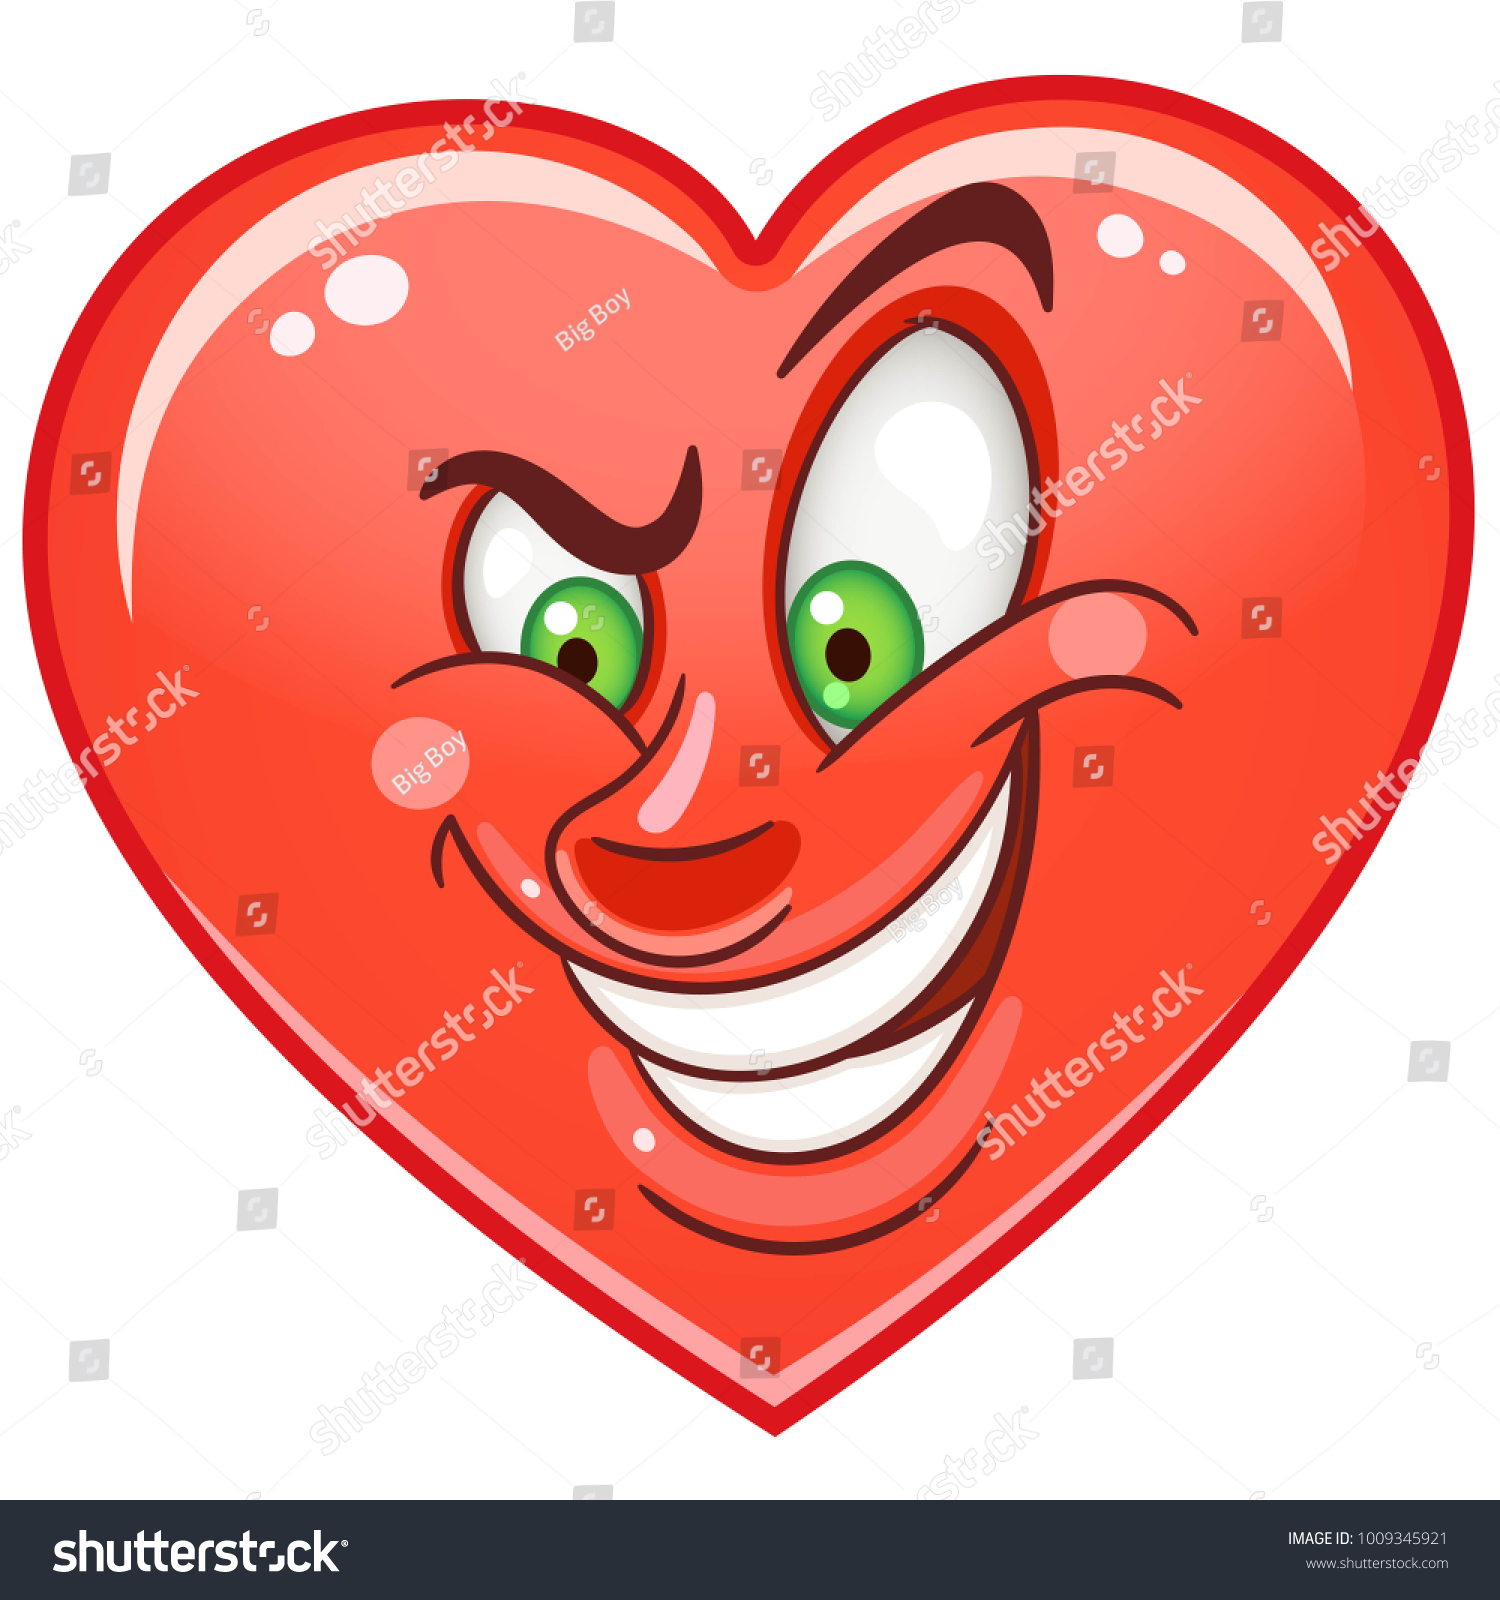 Cartoon Red Cunning Heart Emoticon Smiley Stock Vector Royalty Free